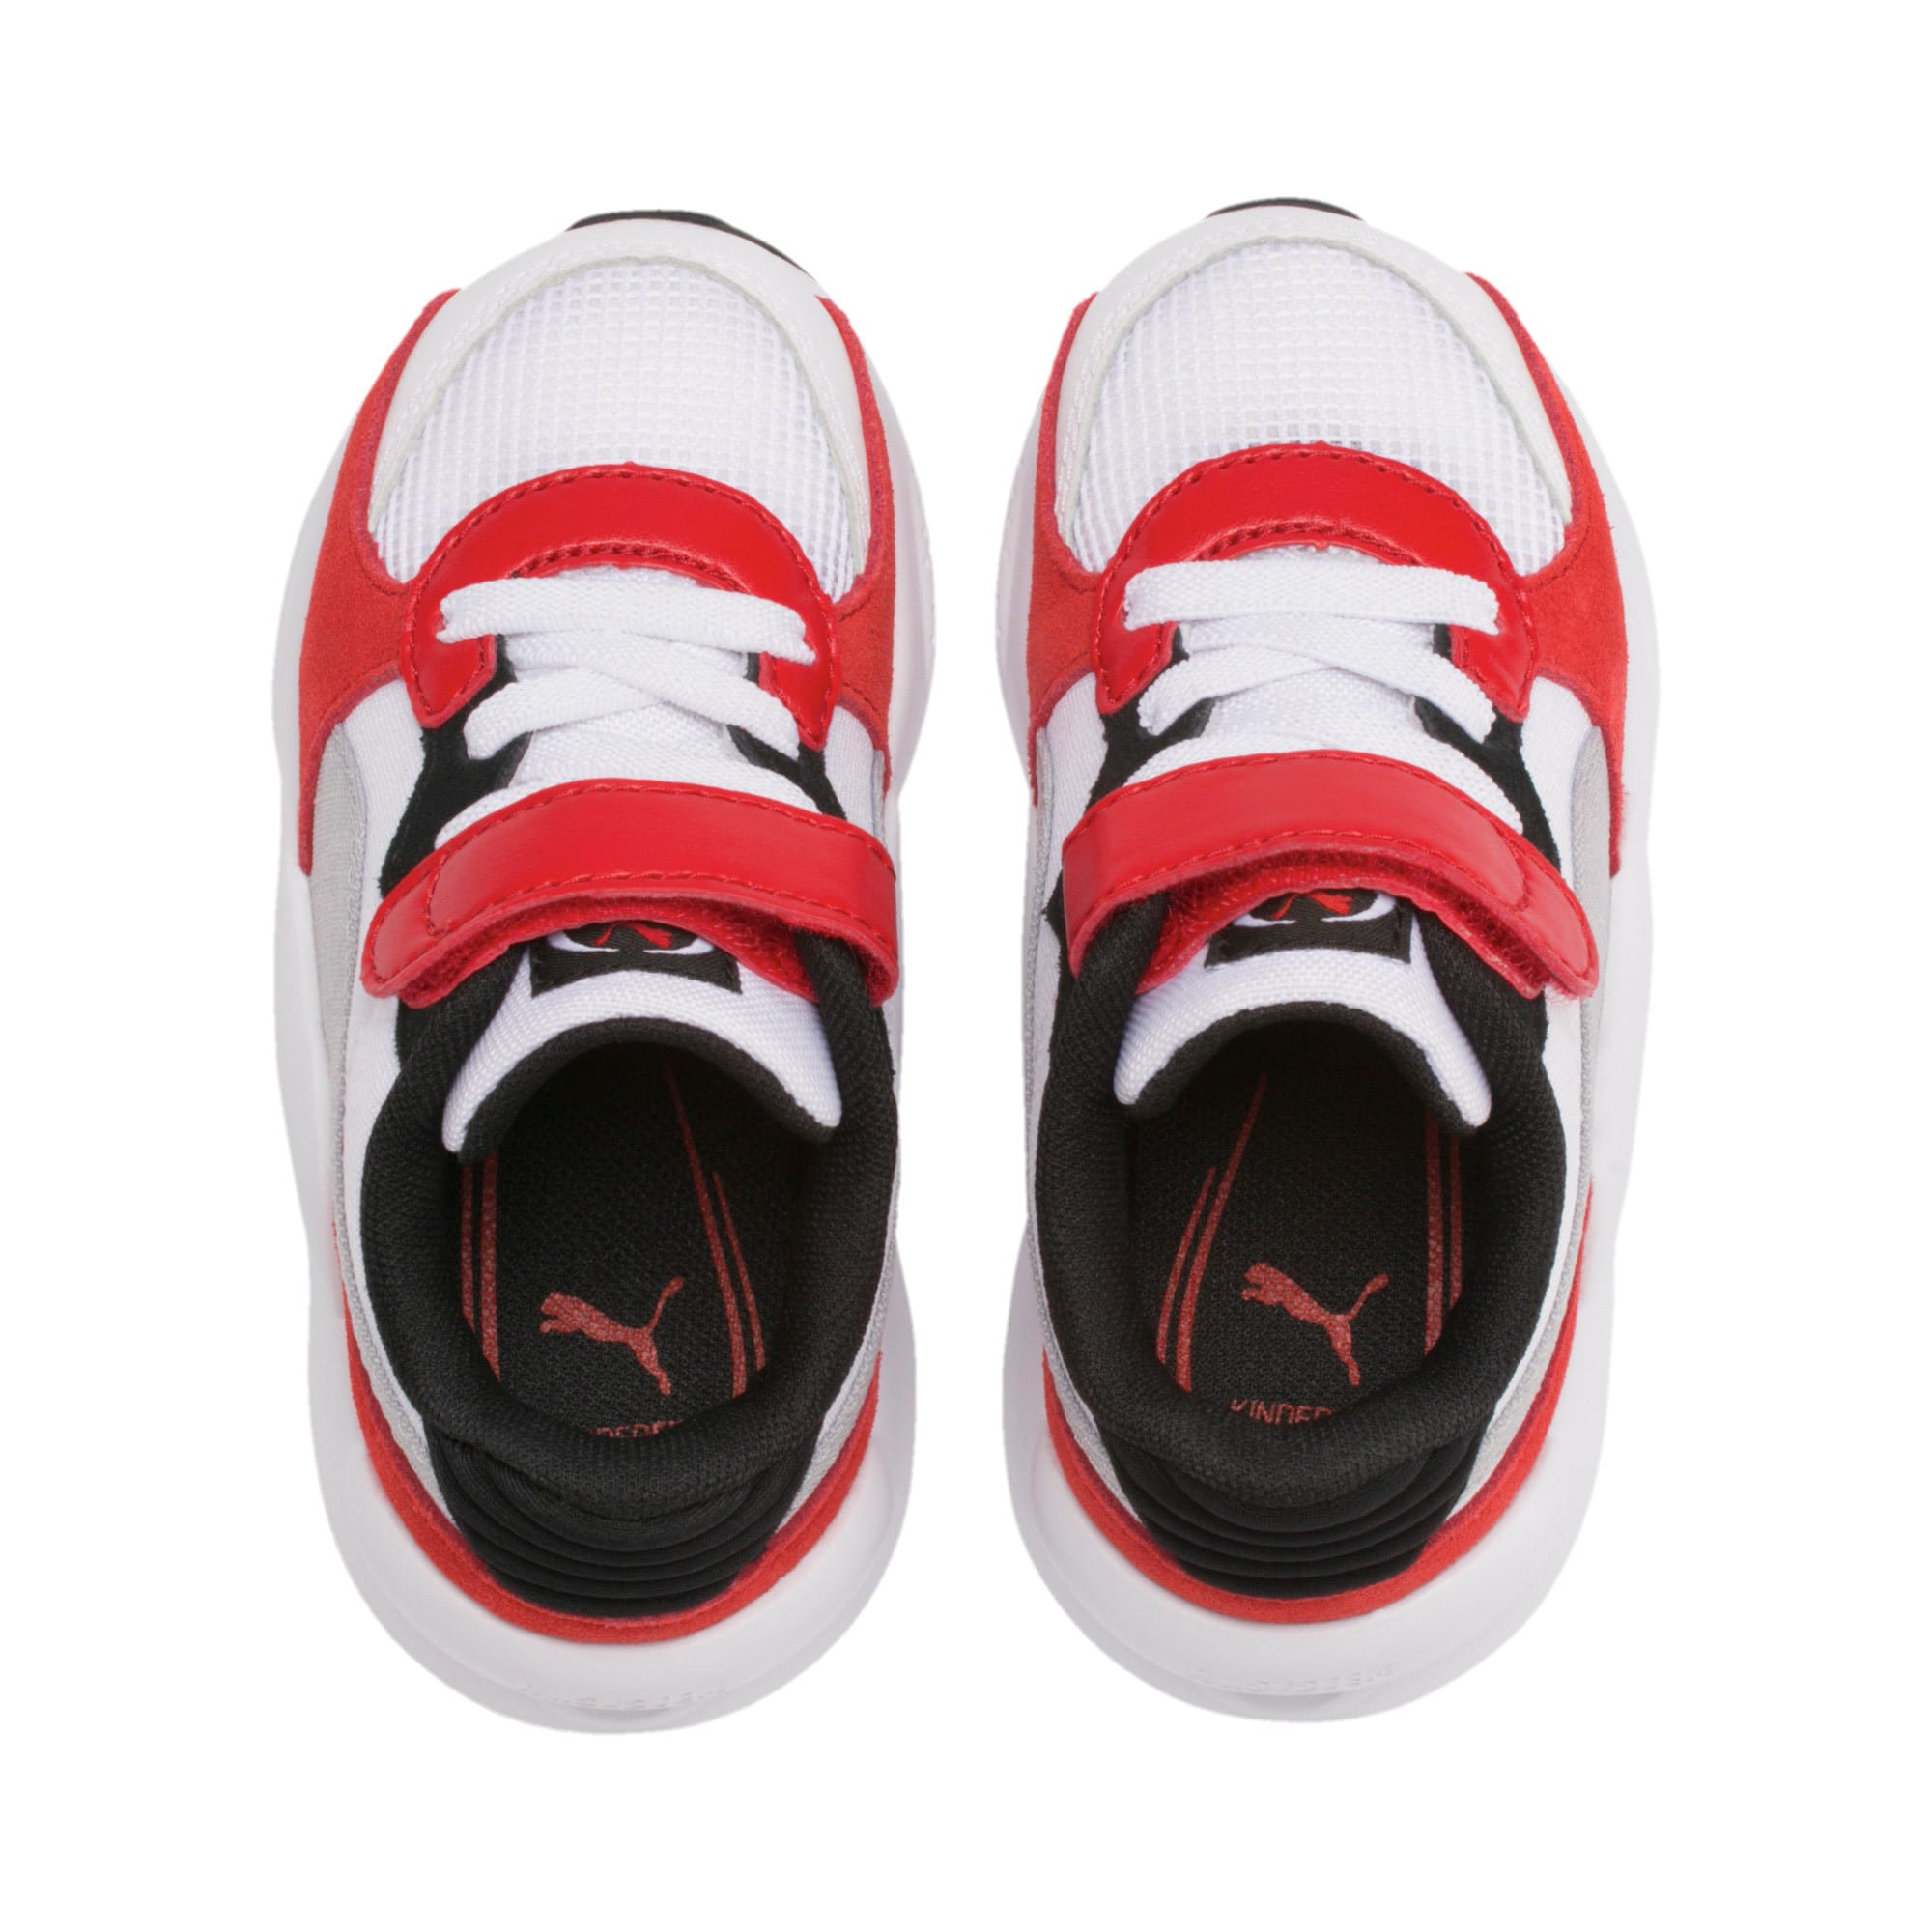 Thumbnail 6 of RS 9.8 Space AC Toddler Shoes, Puma White-High Risk Red, medium